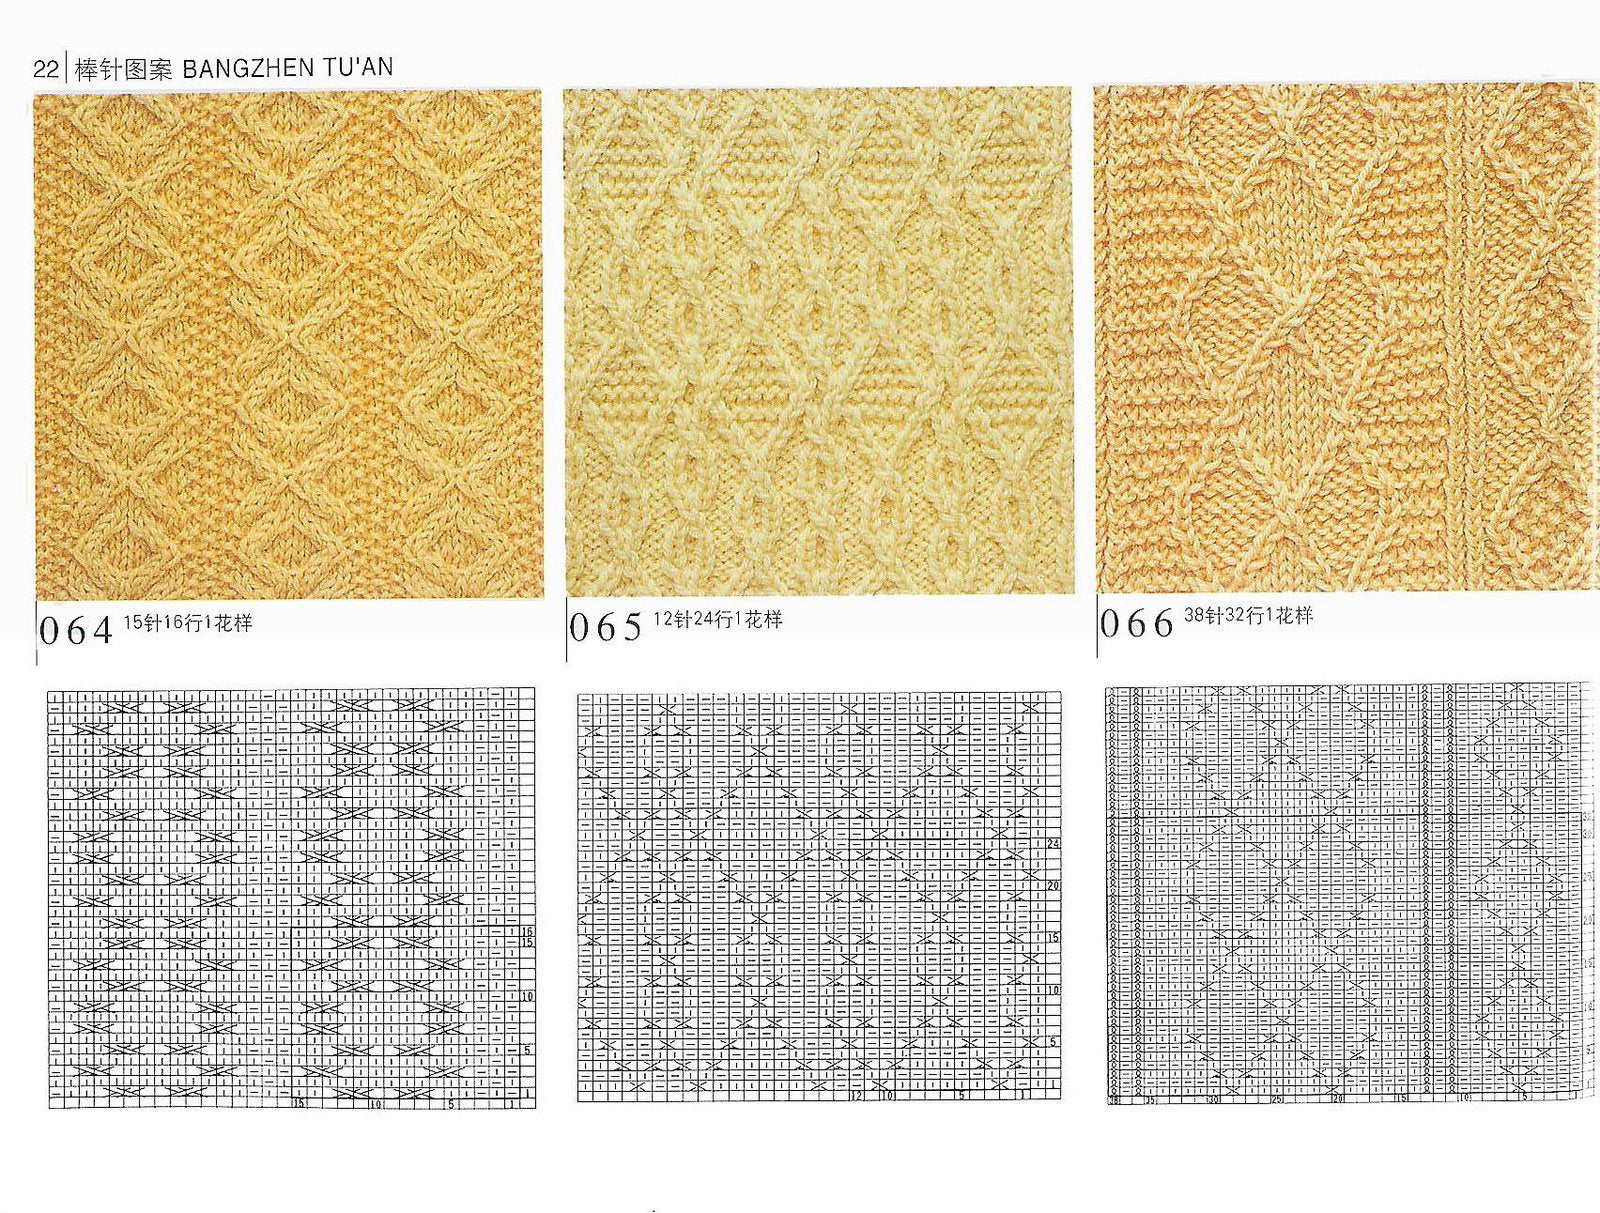 Arans knitting patterns for sweater